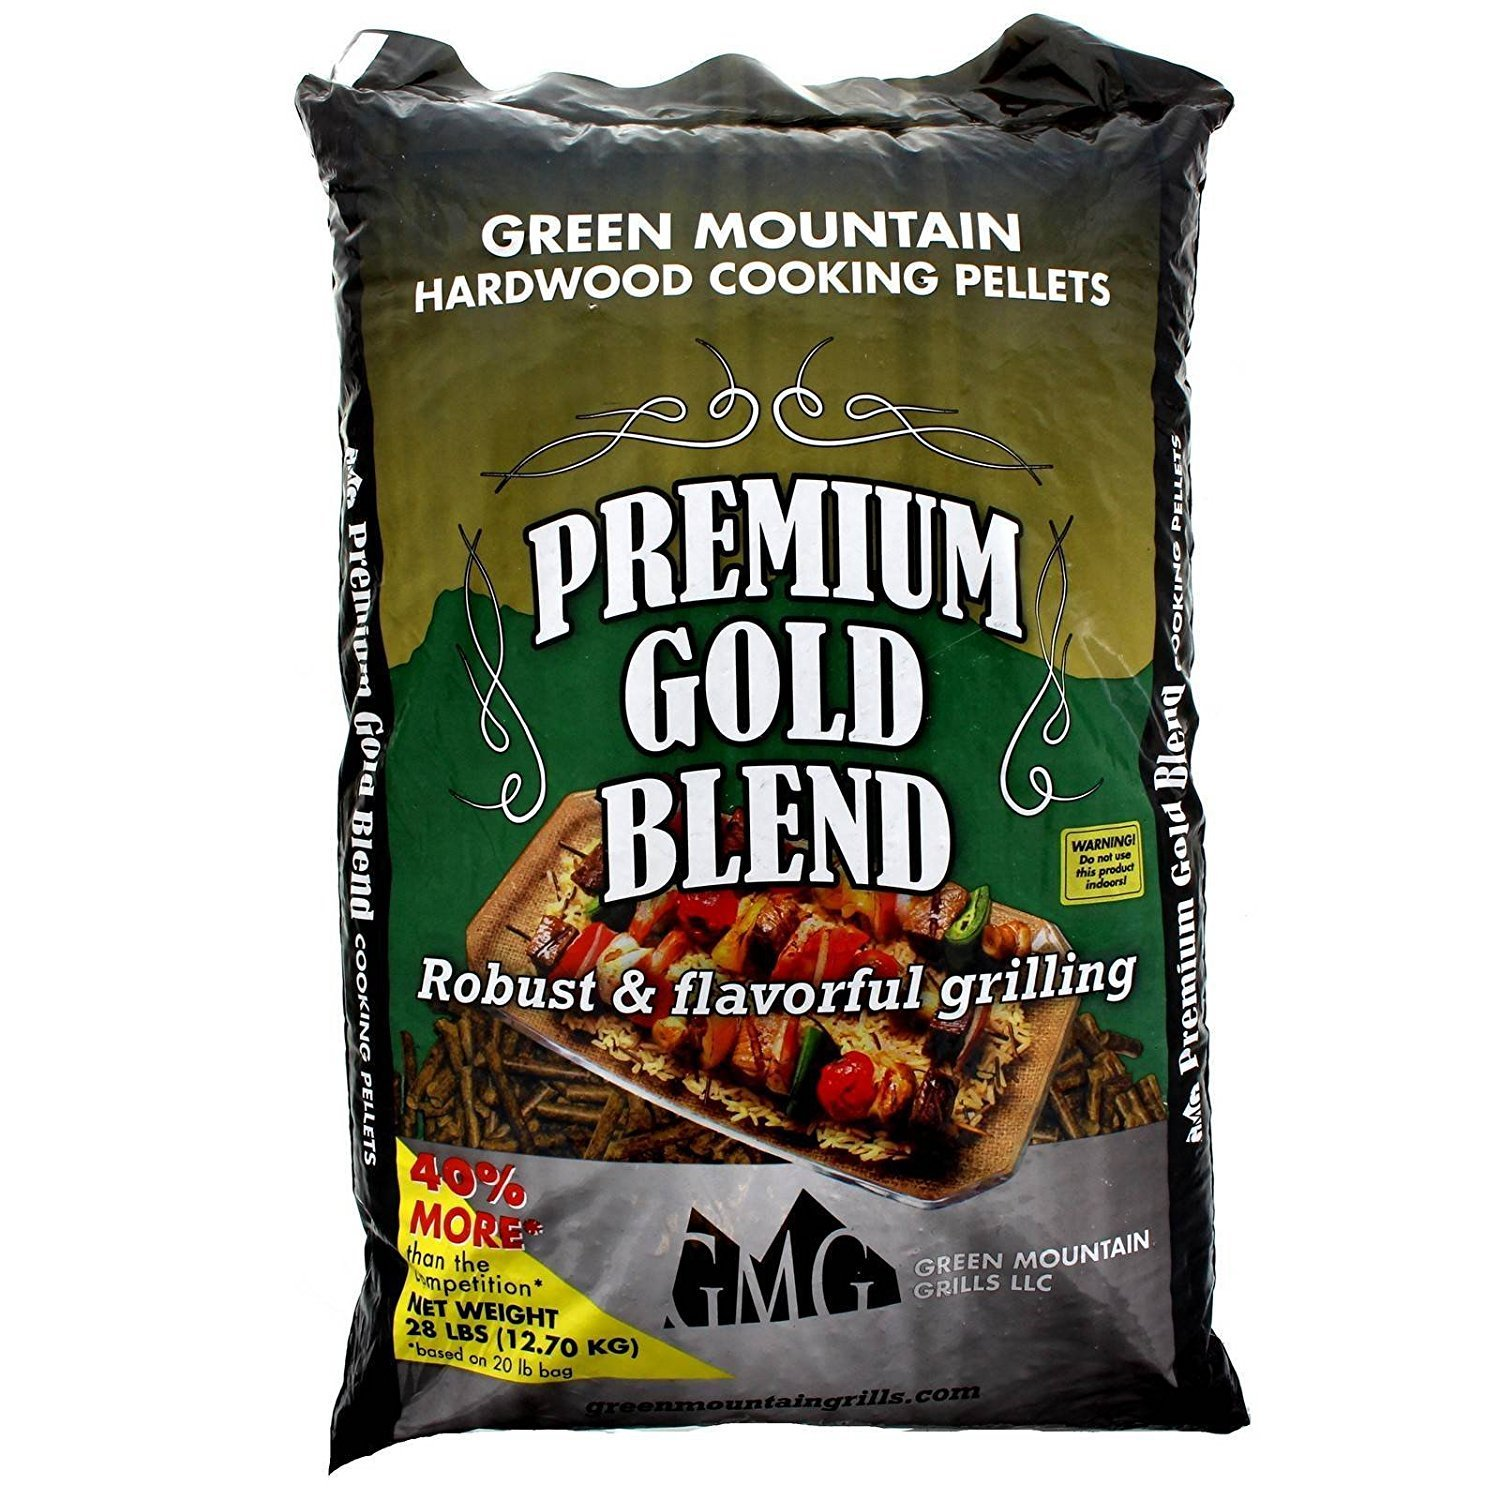 Green Mountain Grills Premium Gold, Texas, and Fruitwood Hardwood Grill Pellets by Green Mountain (Image #2)